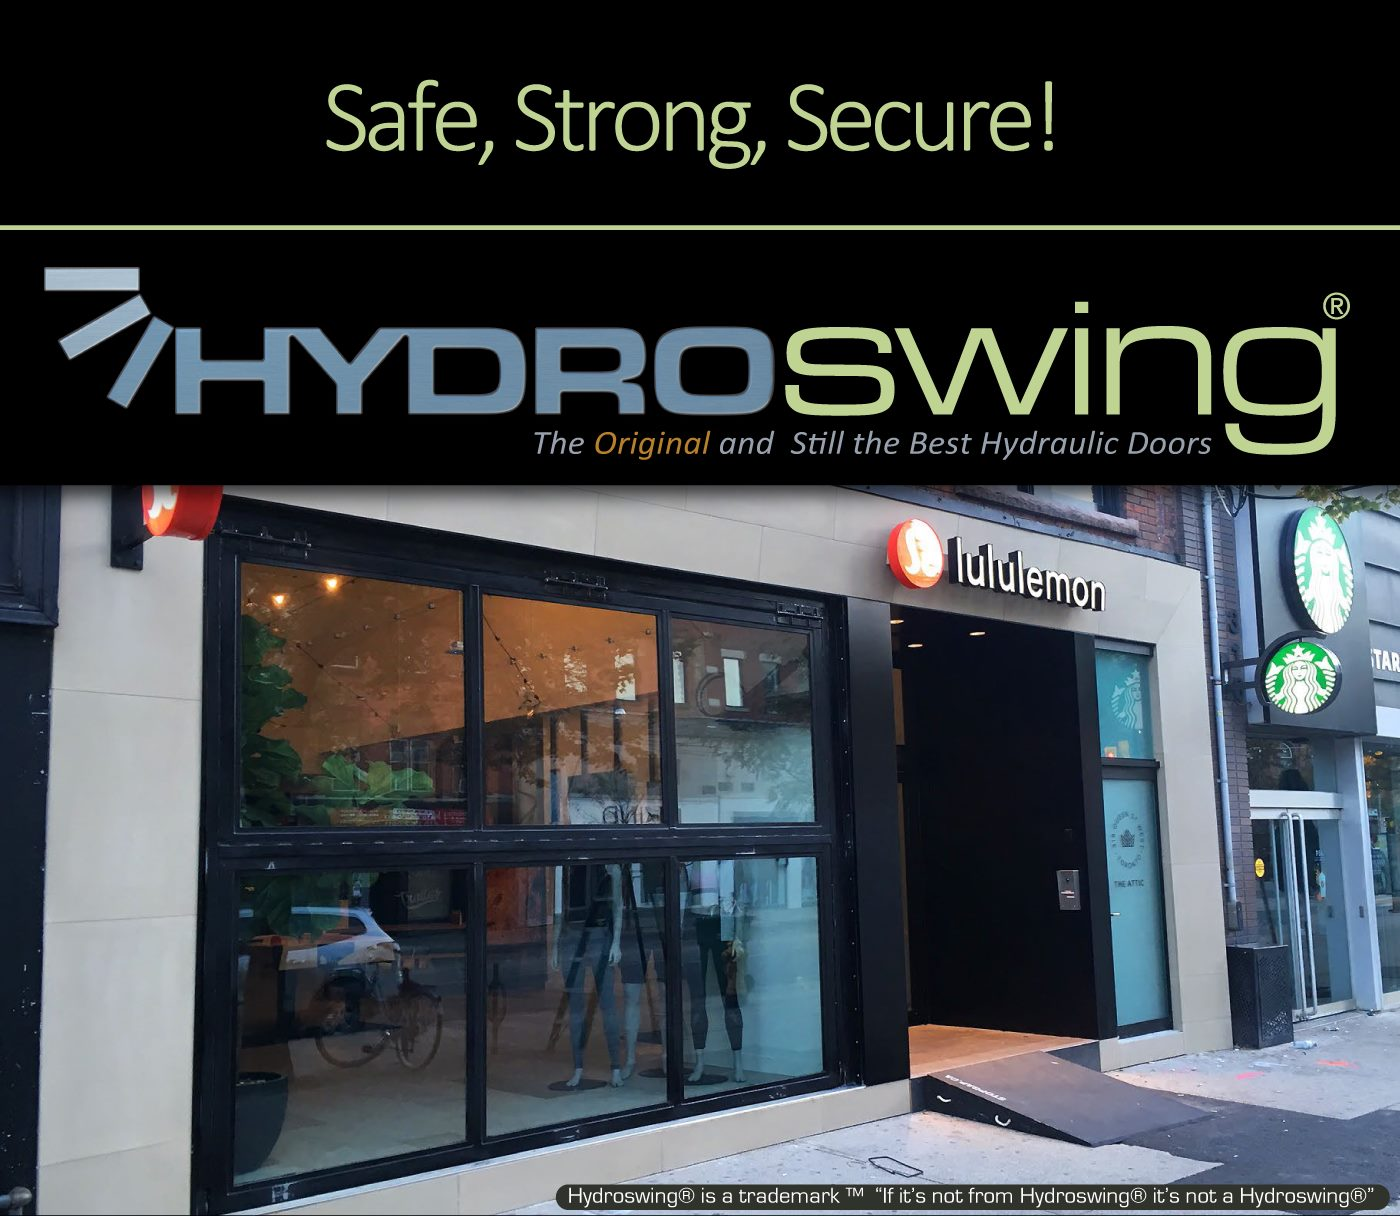 hydroswing dual panel door chosen to protect and enhance the appearance of lulu lemons store front